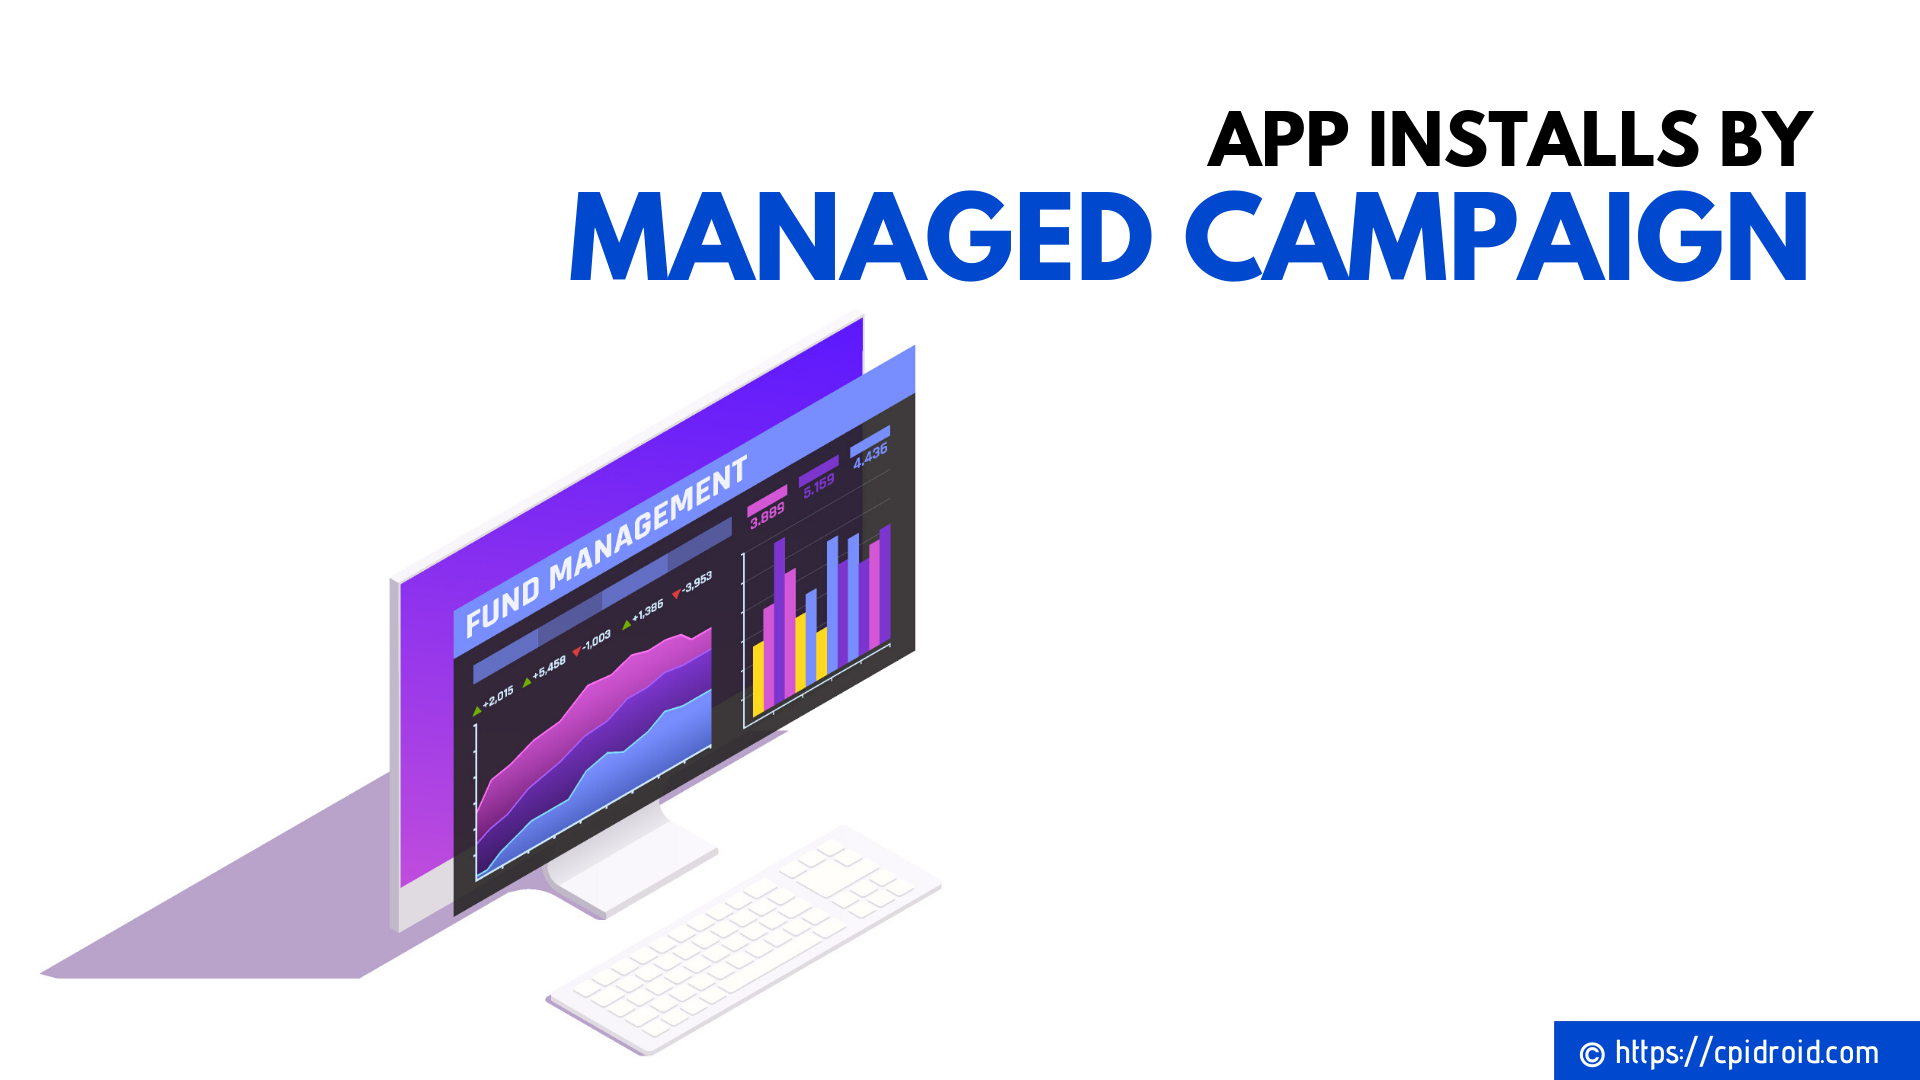 App Installs by Managed Campaign